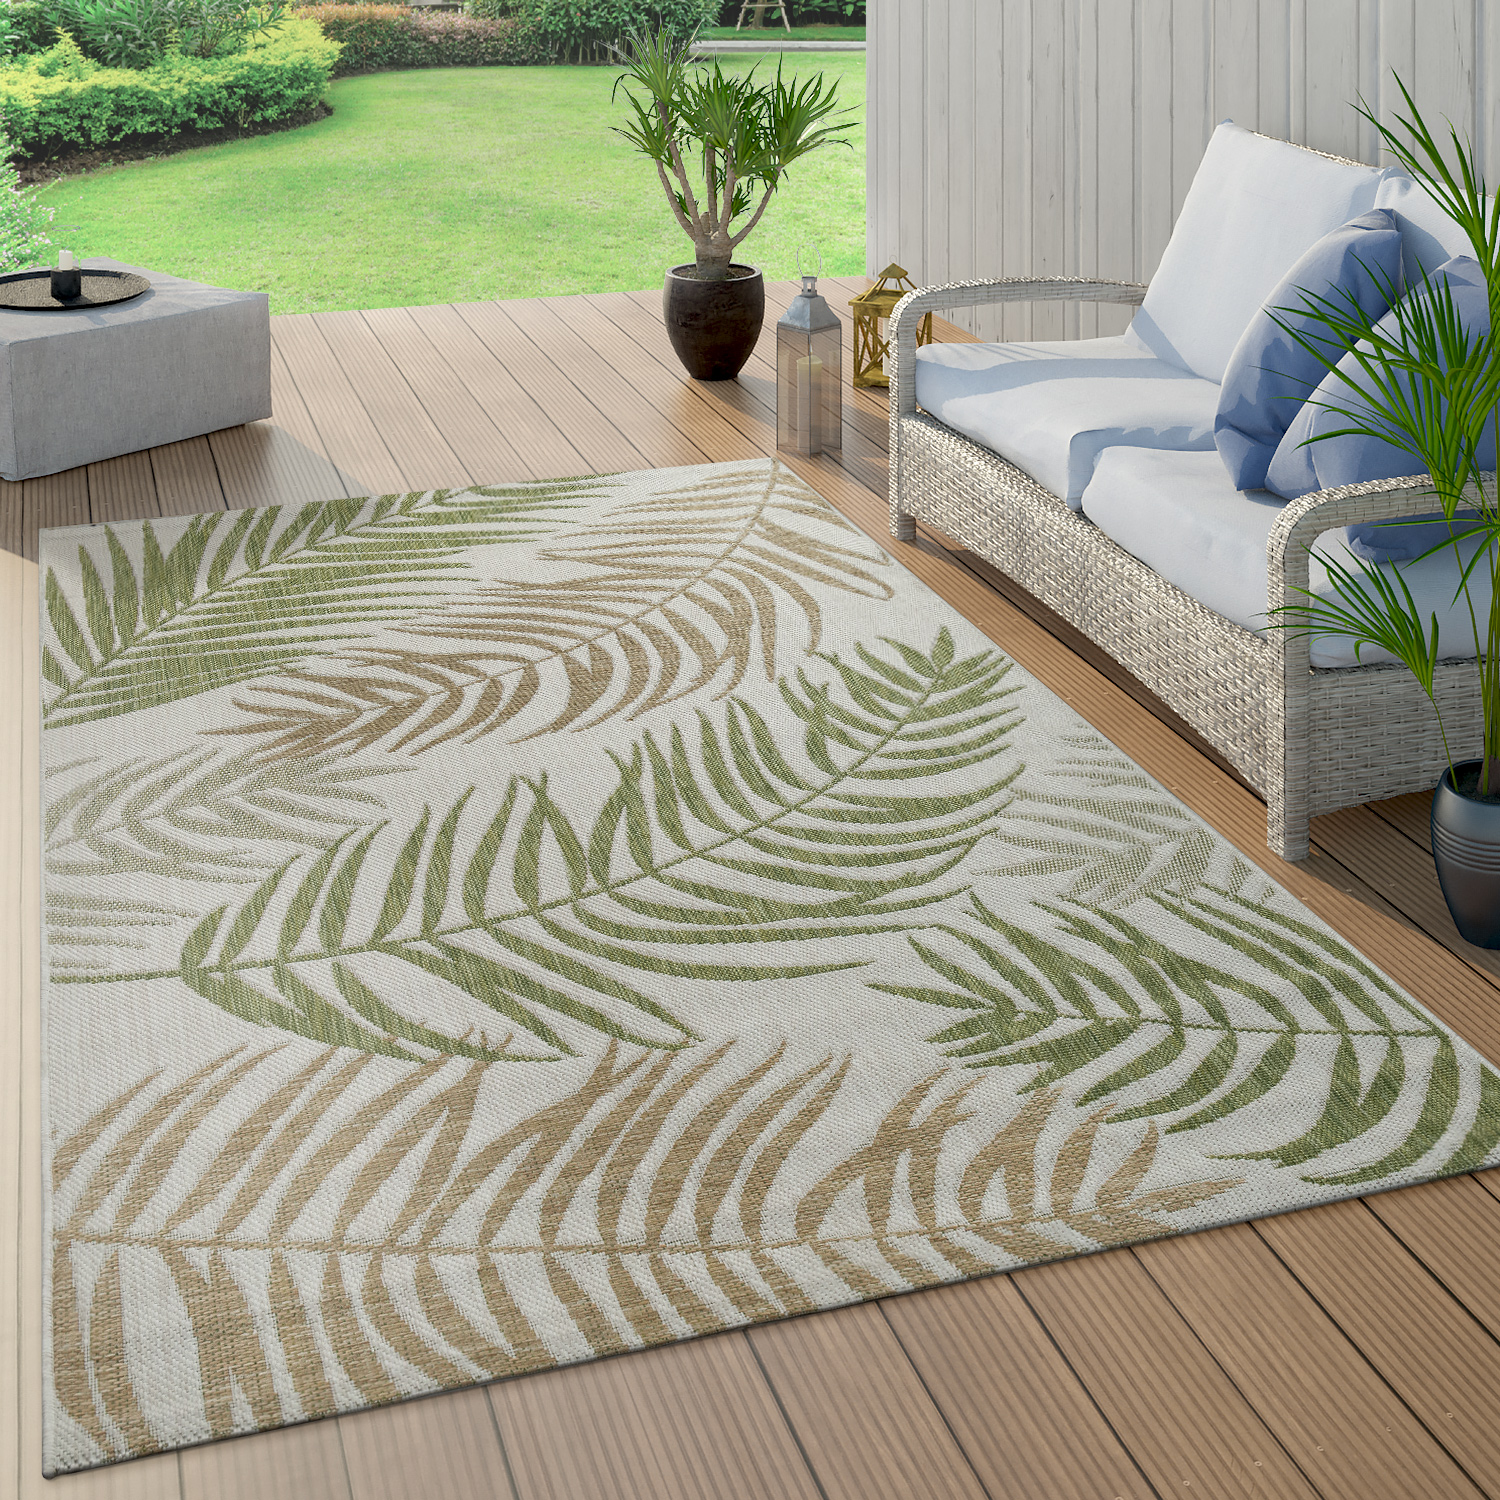 Indoor & Outdoor Rug Flat-Weave Modern Jungle Palm Trees Design In Pastel Green